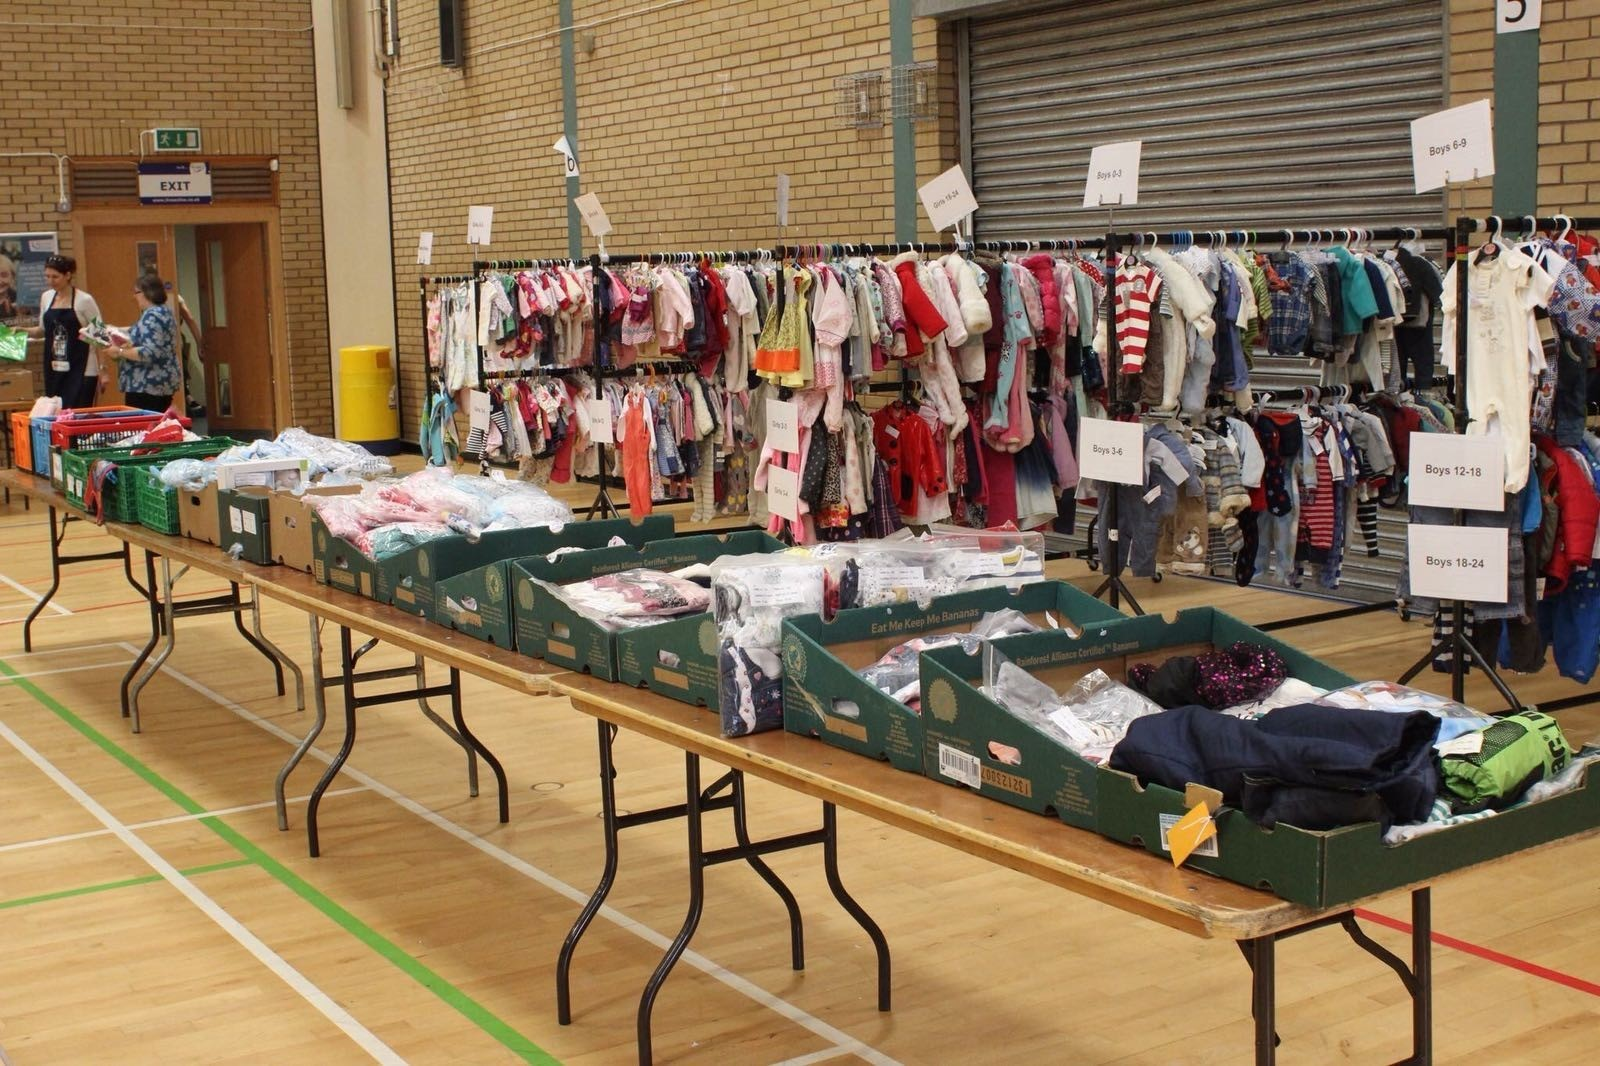 The sales offer a huge range of goods for families.